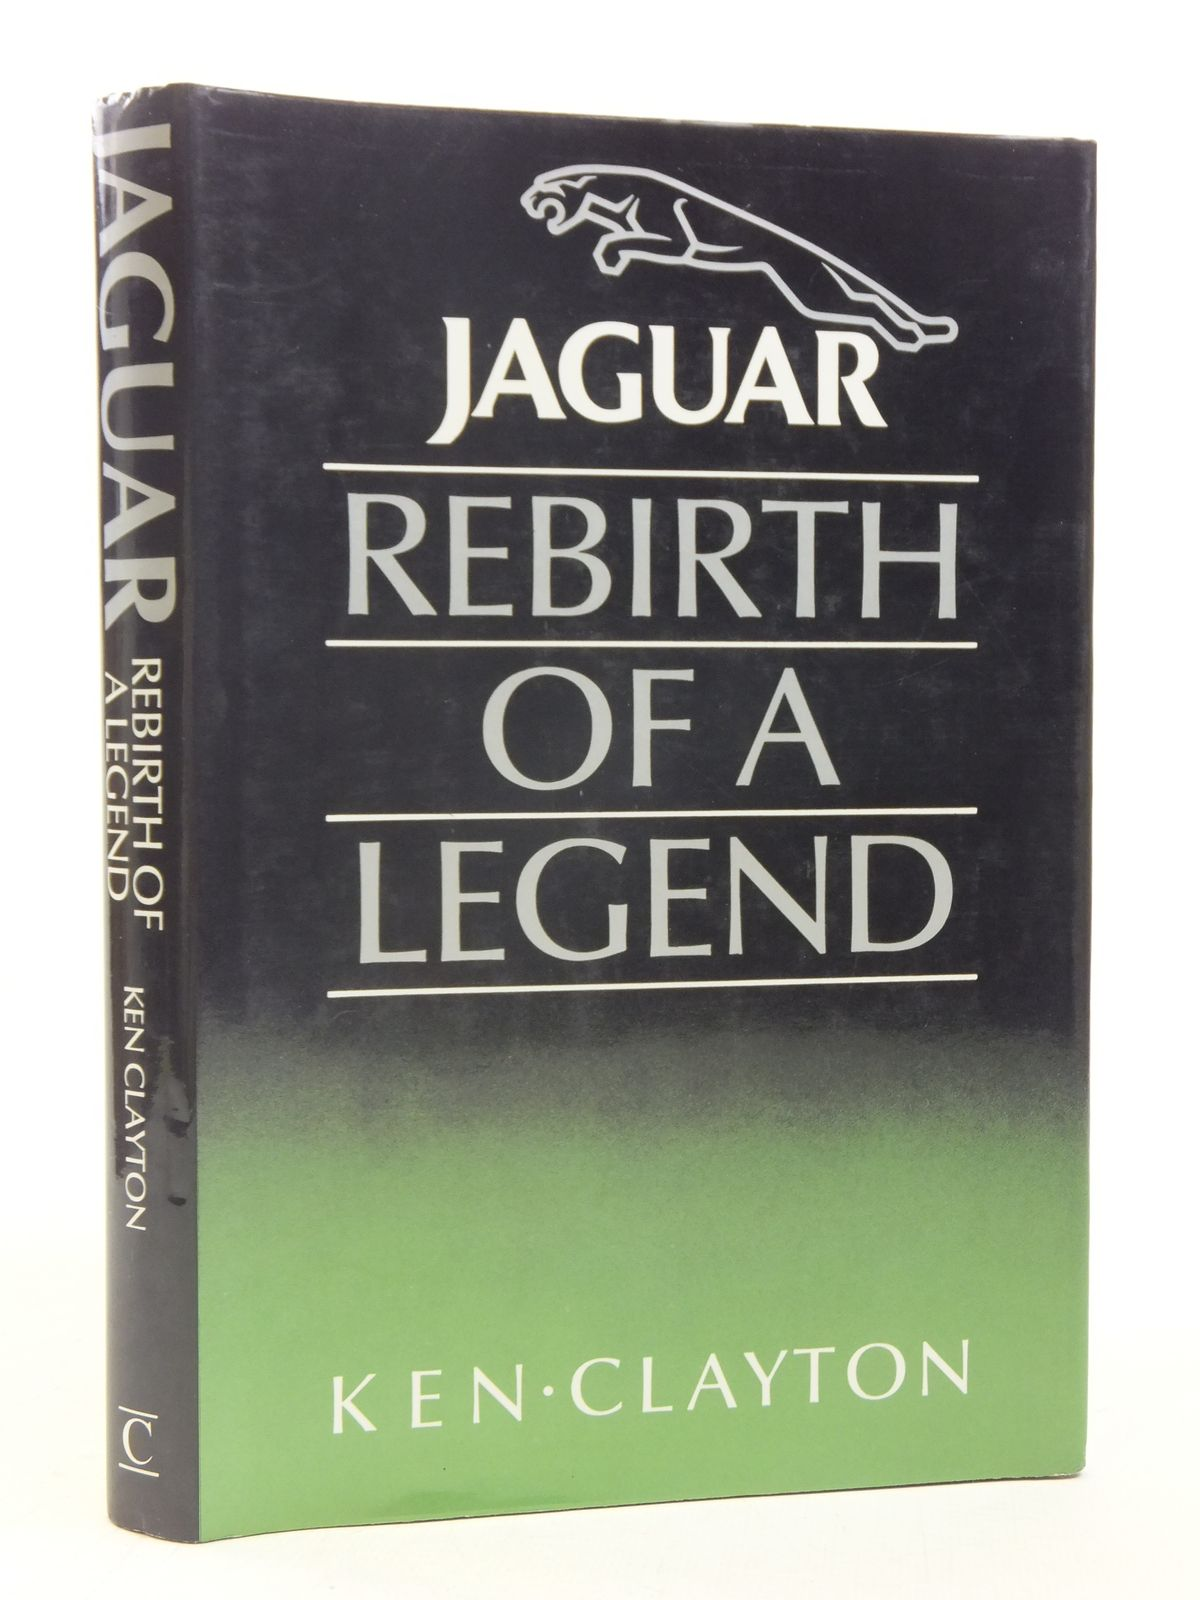 Photo of JAGUAR REBIRTH OF A LEGEND written by Clayton, Ken published by Century (STOCK CODE: 2115723)  for sale by Stella & Rose's Books